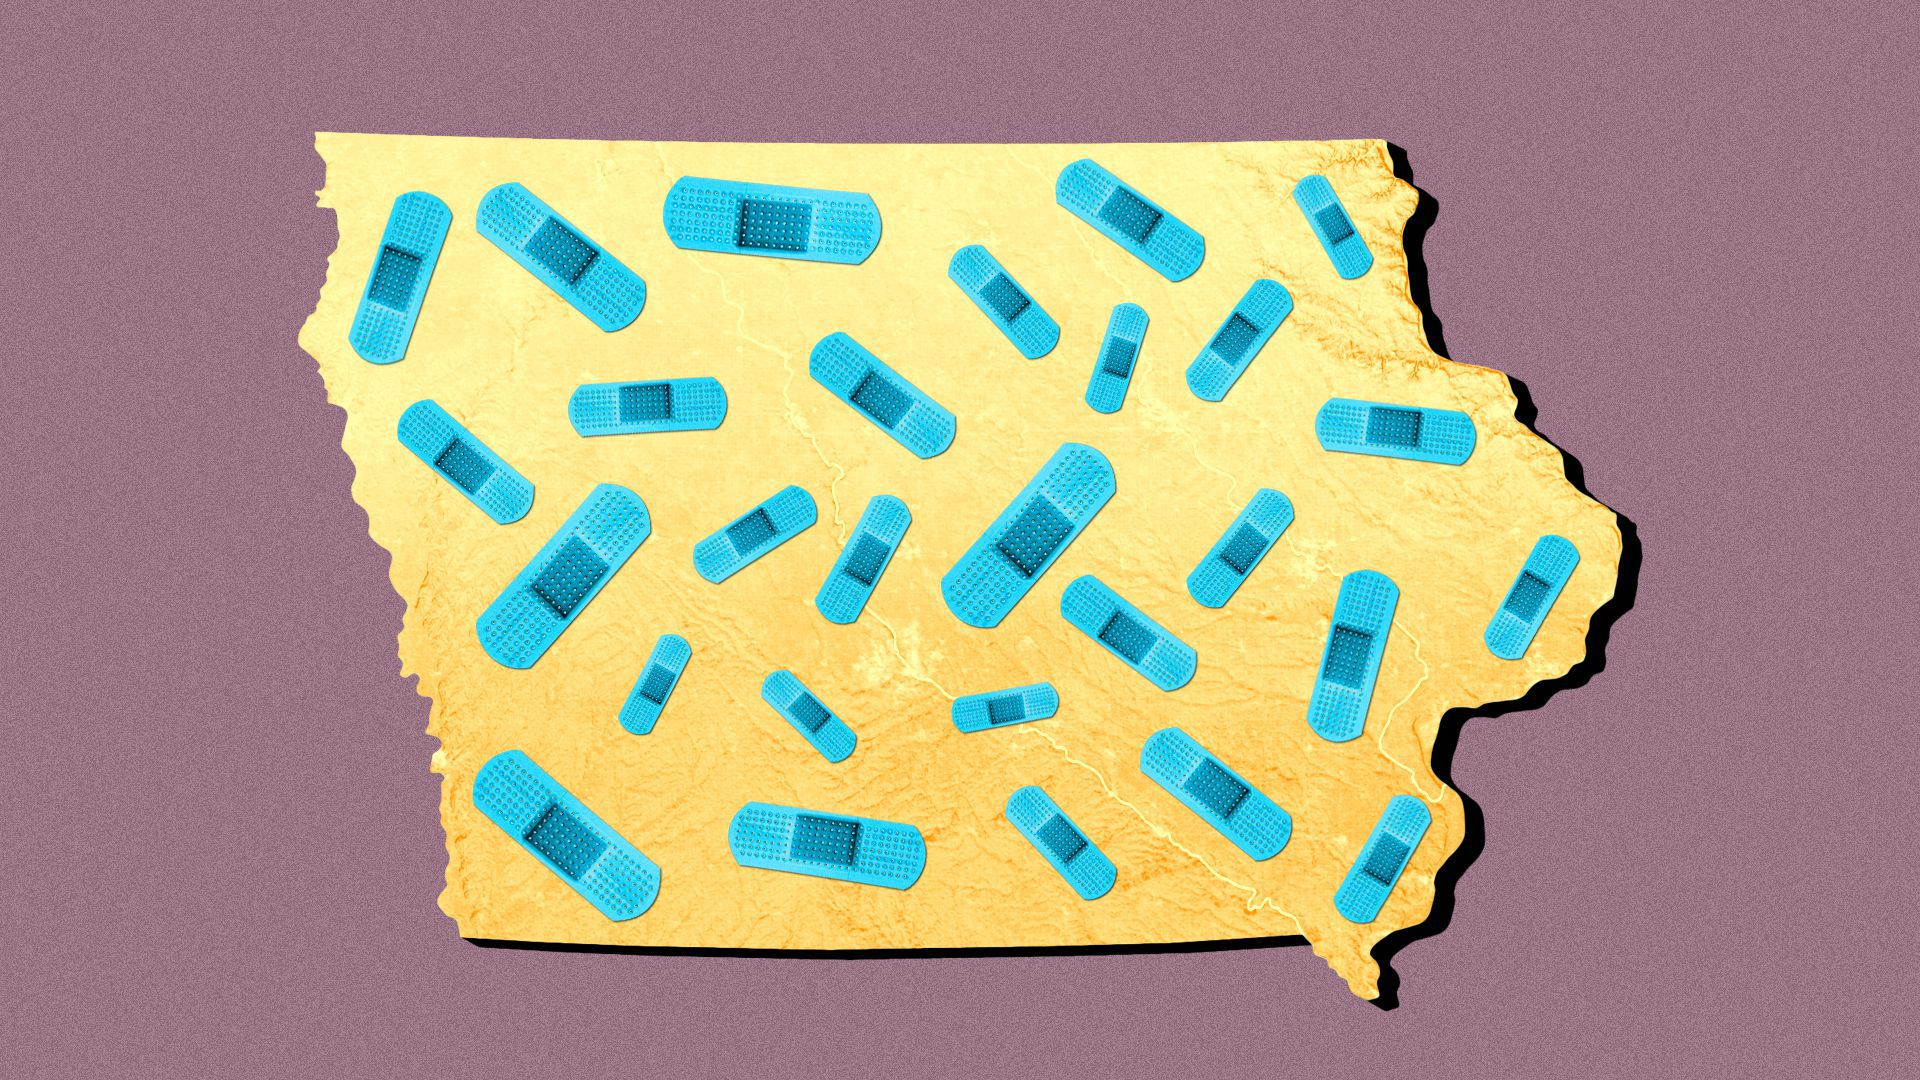 Illustration of the state of Iowa covered in bandages.